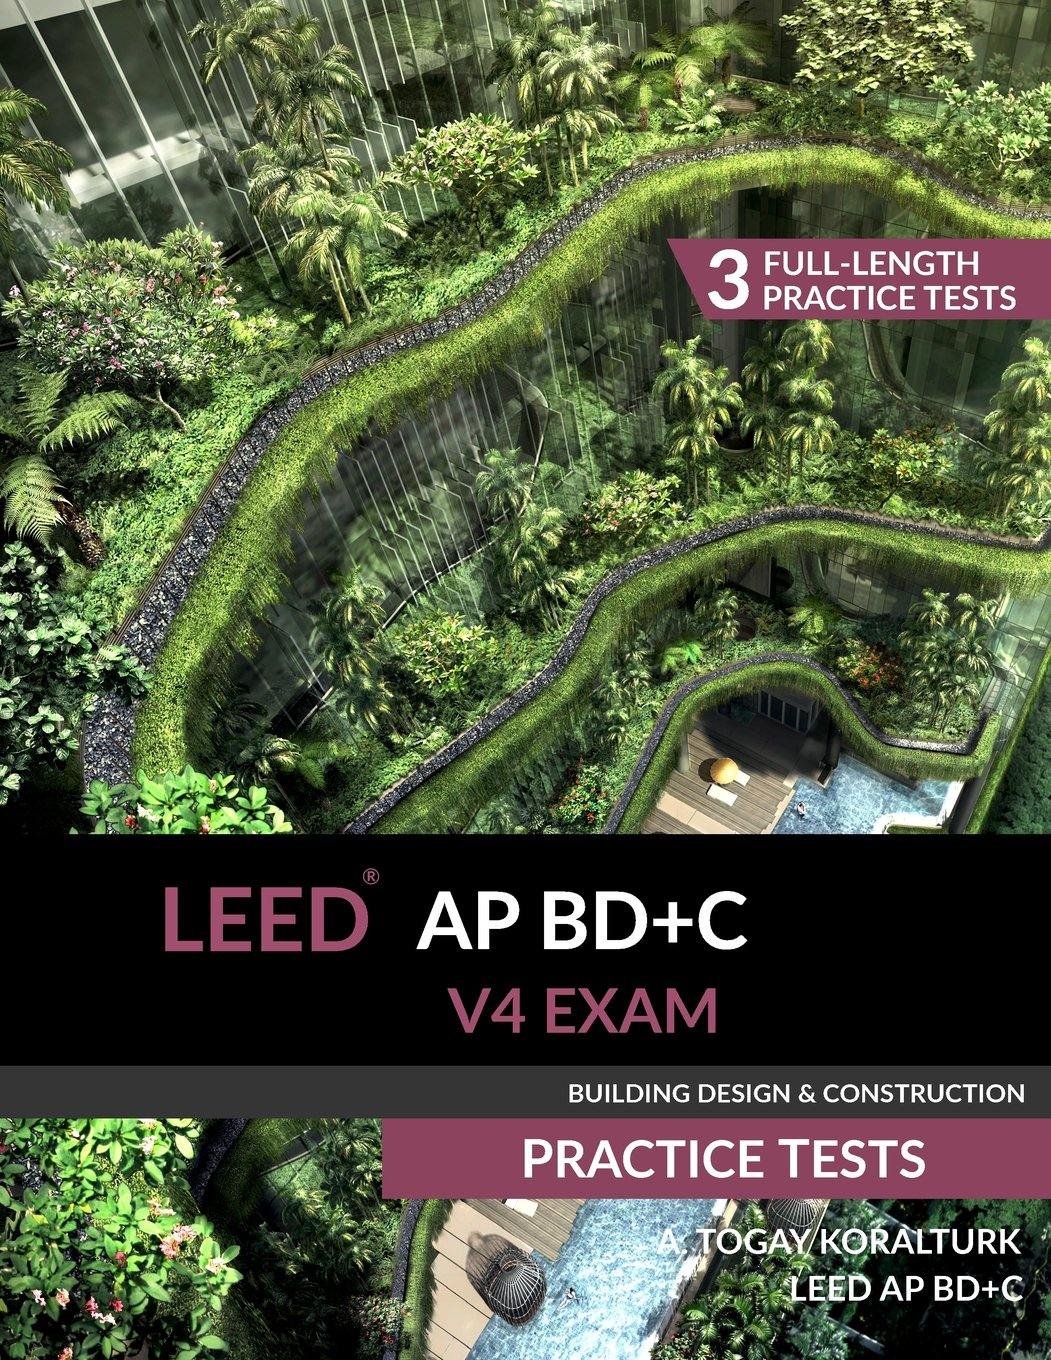 Leed ap bdc v4 exam practice tests a togay koralturk leed ap bdc v4 exam practice tests a togay koralturk 9780994618047 amazon books xflitez Images